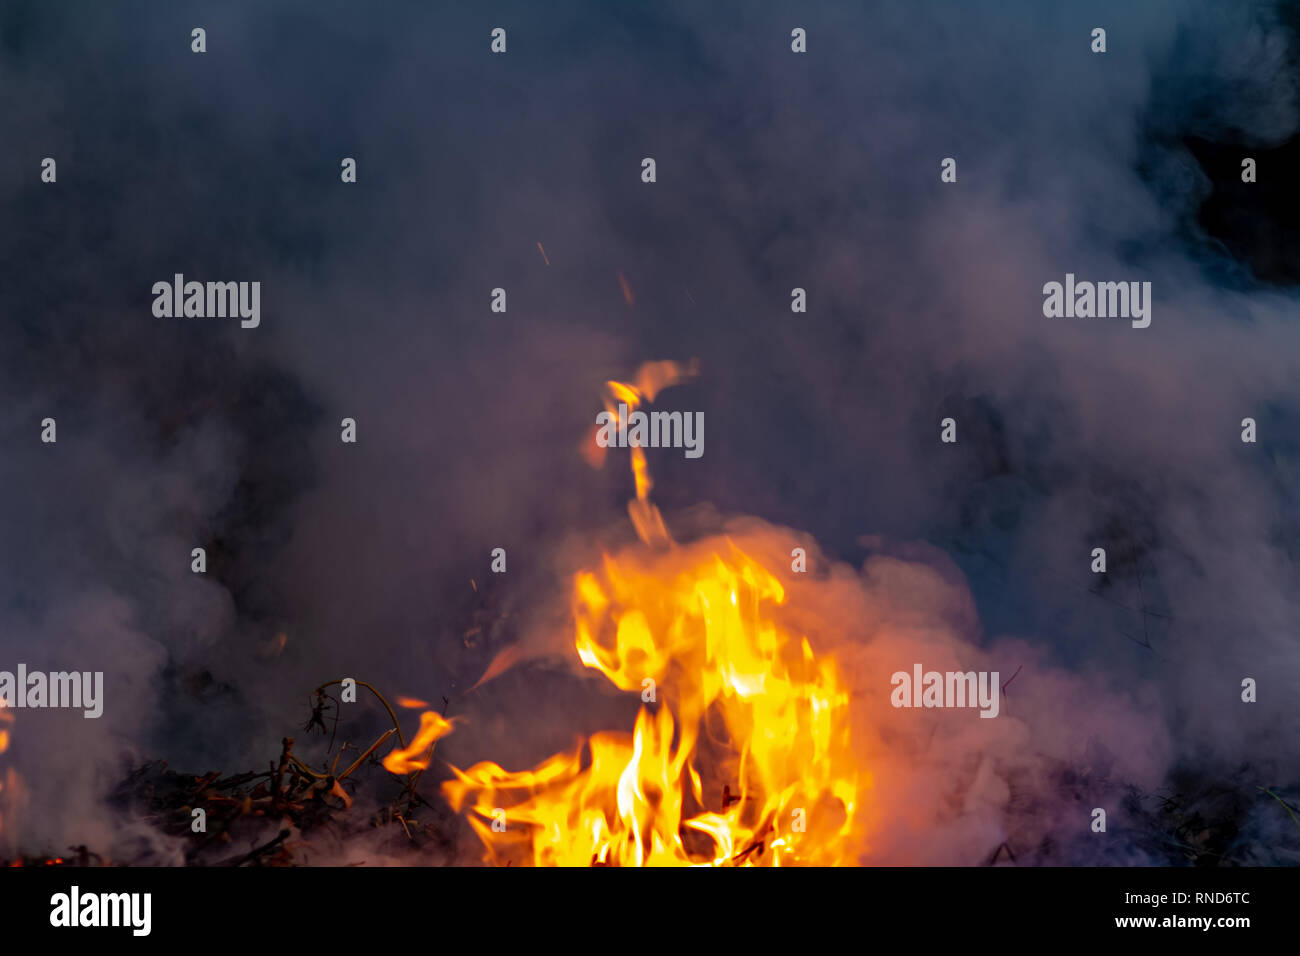 Forest wildfire at night whole area covered by flame and clouds of dark smoke. Distorted details due high temperature and evaporation gases during com - Stock Image